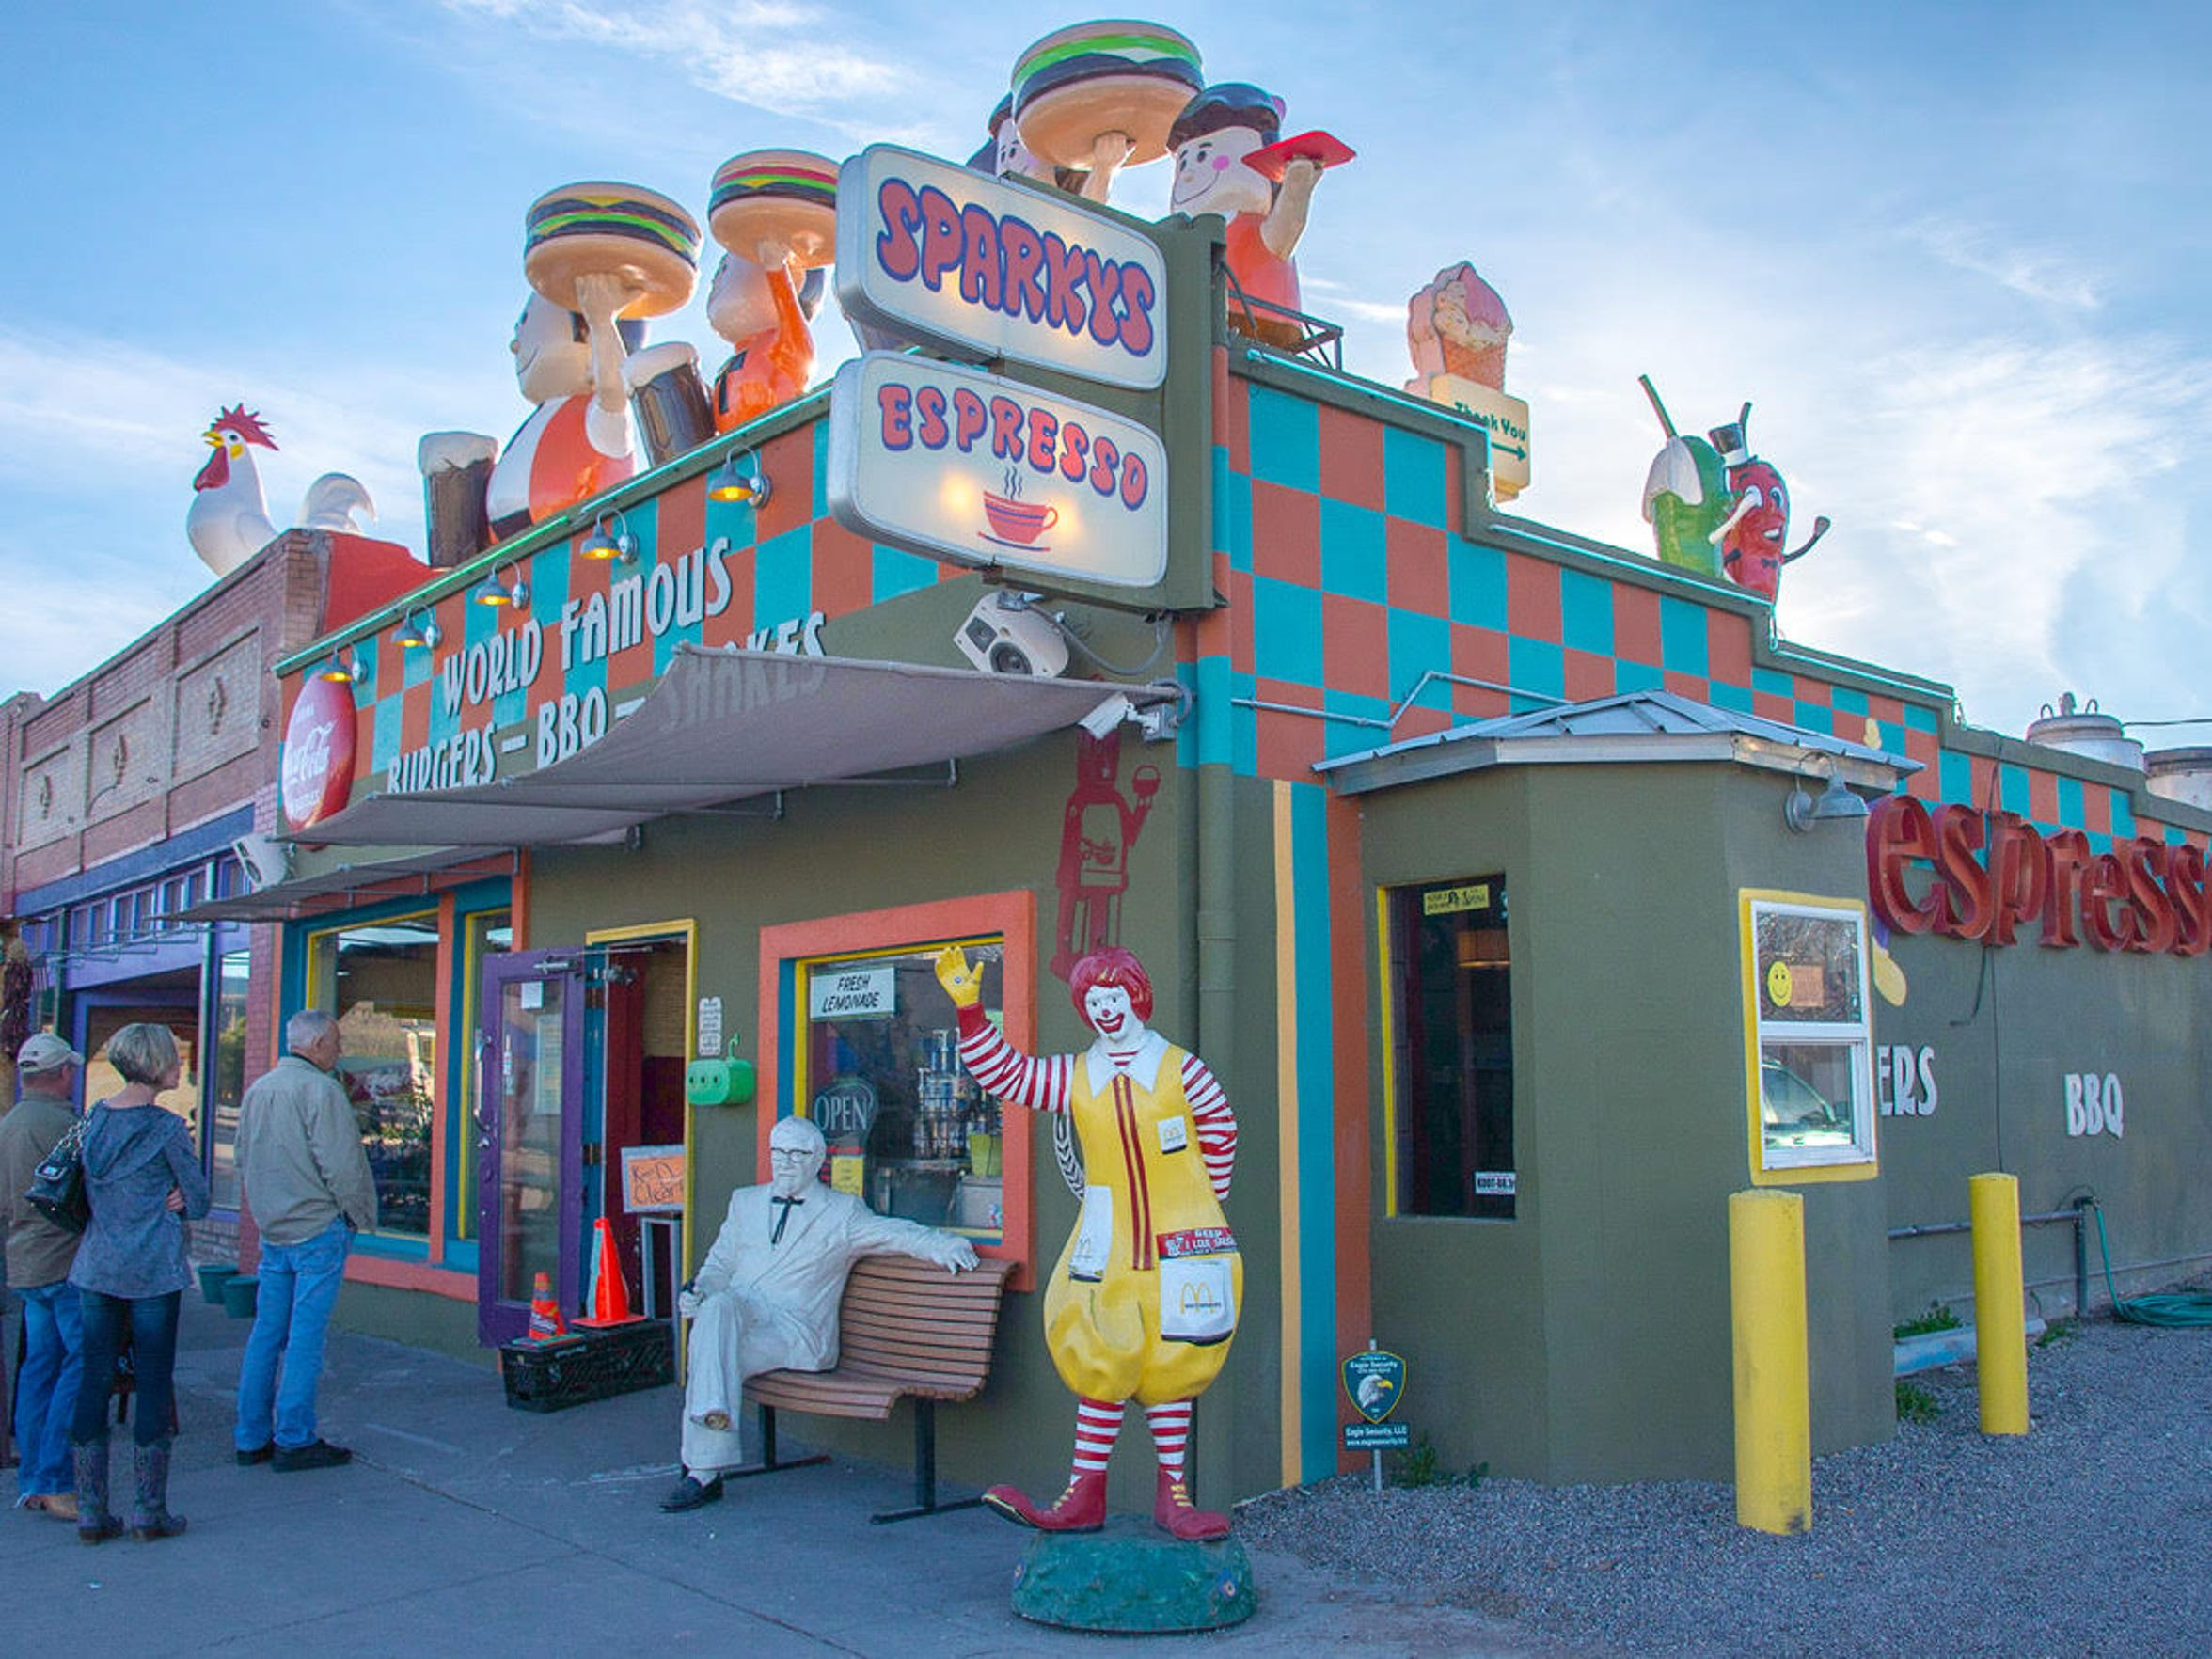 Sparky's Burgers, BBQ and Espresso, located in Hatch, New Mexico, will celebrate its 9th anniversary with a free concert on Thursday, Aug. 24.